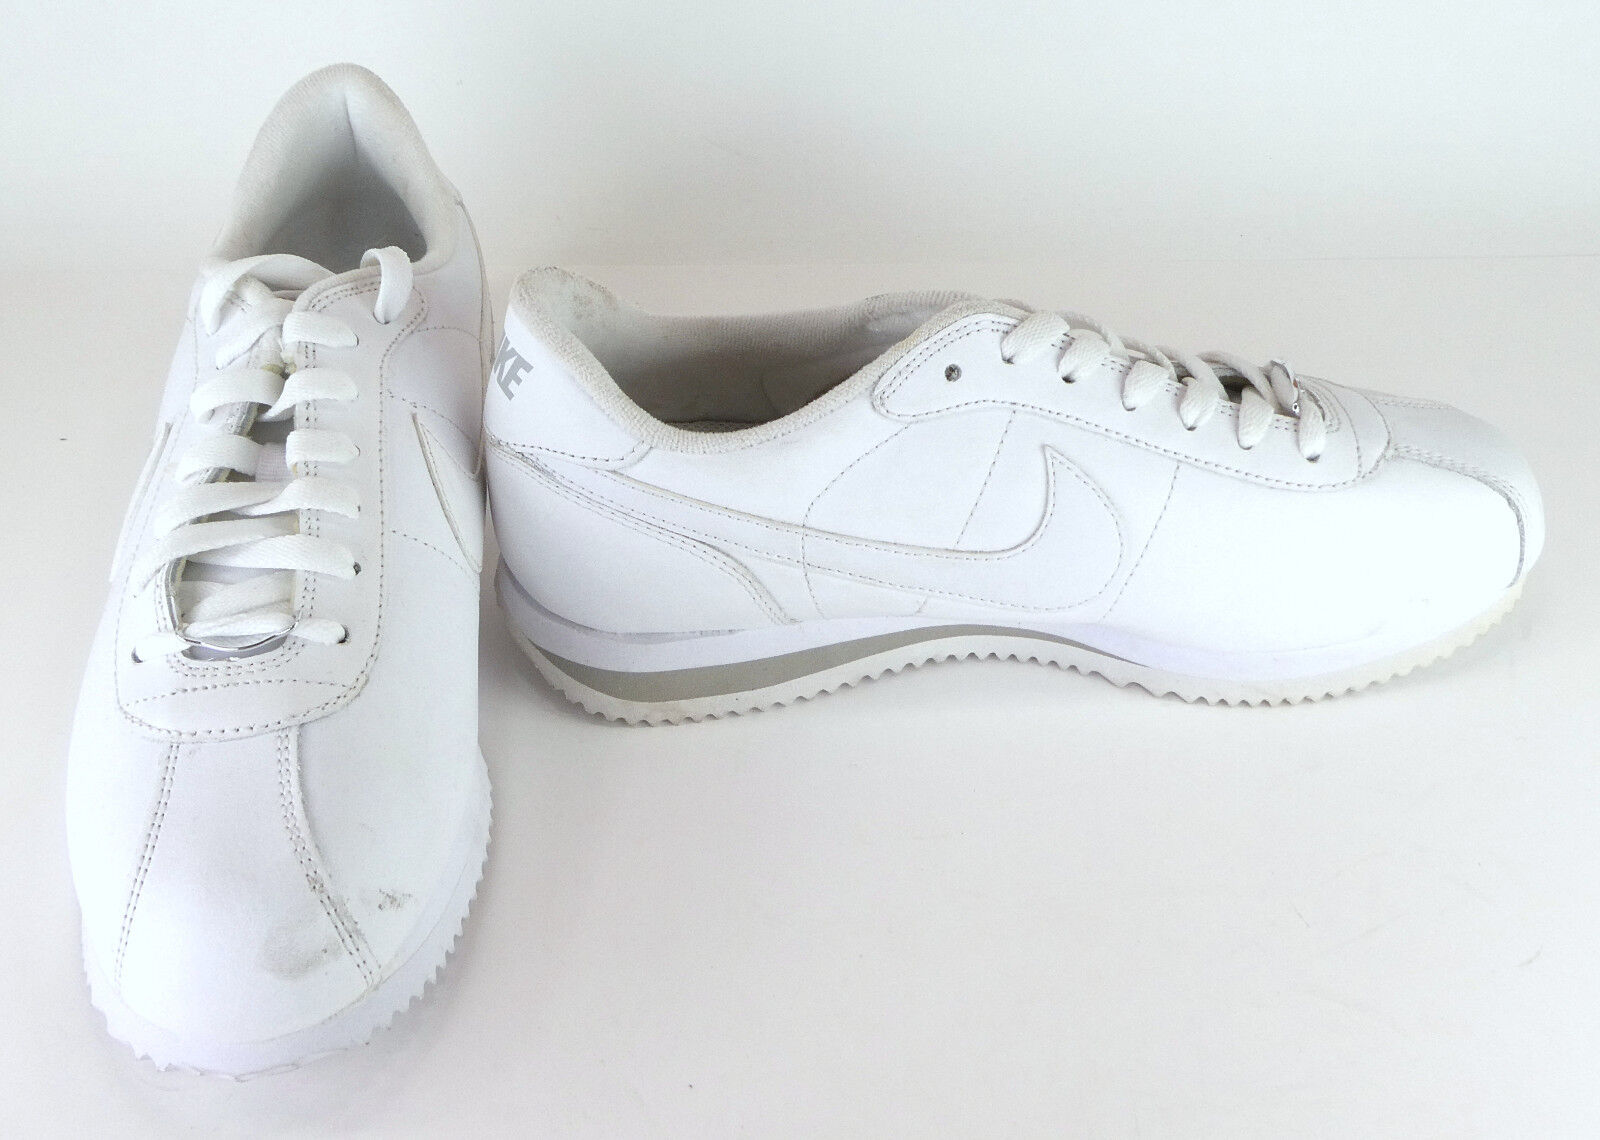 Nike shoes Air Cortez Classic Leather White Sneakers Size 9.5 9